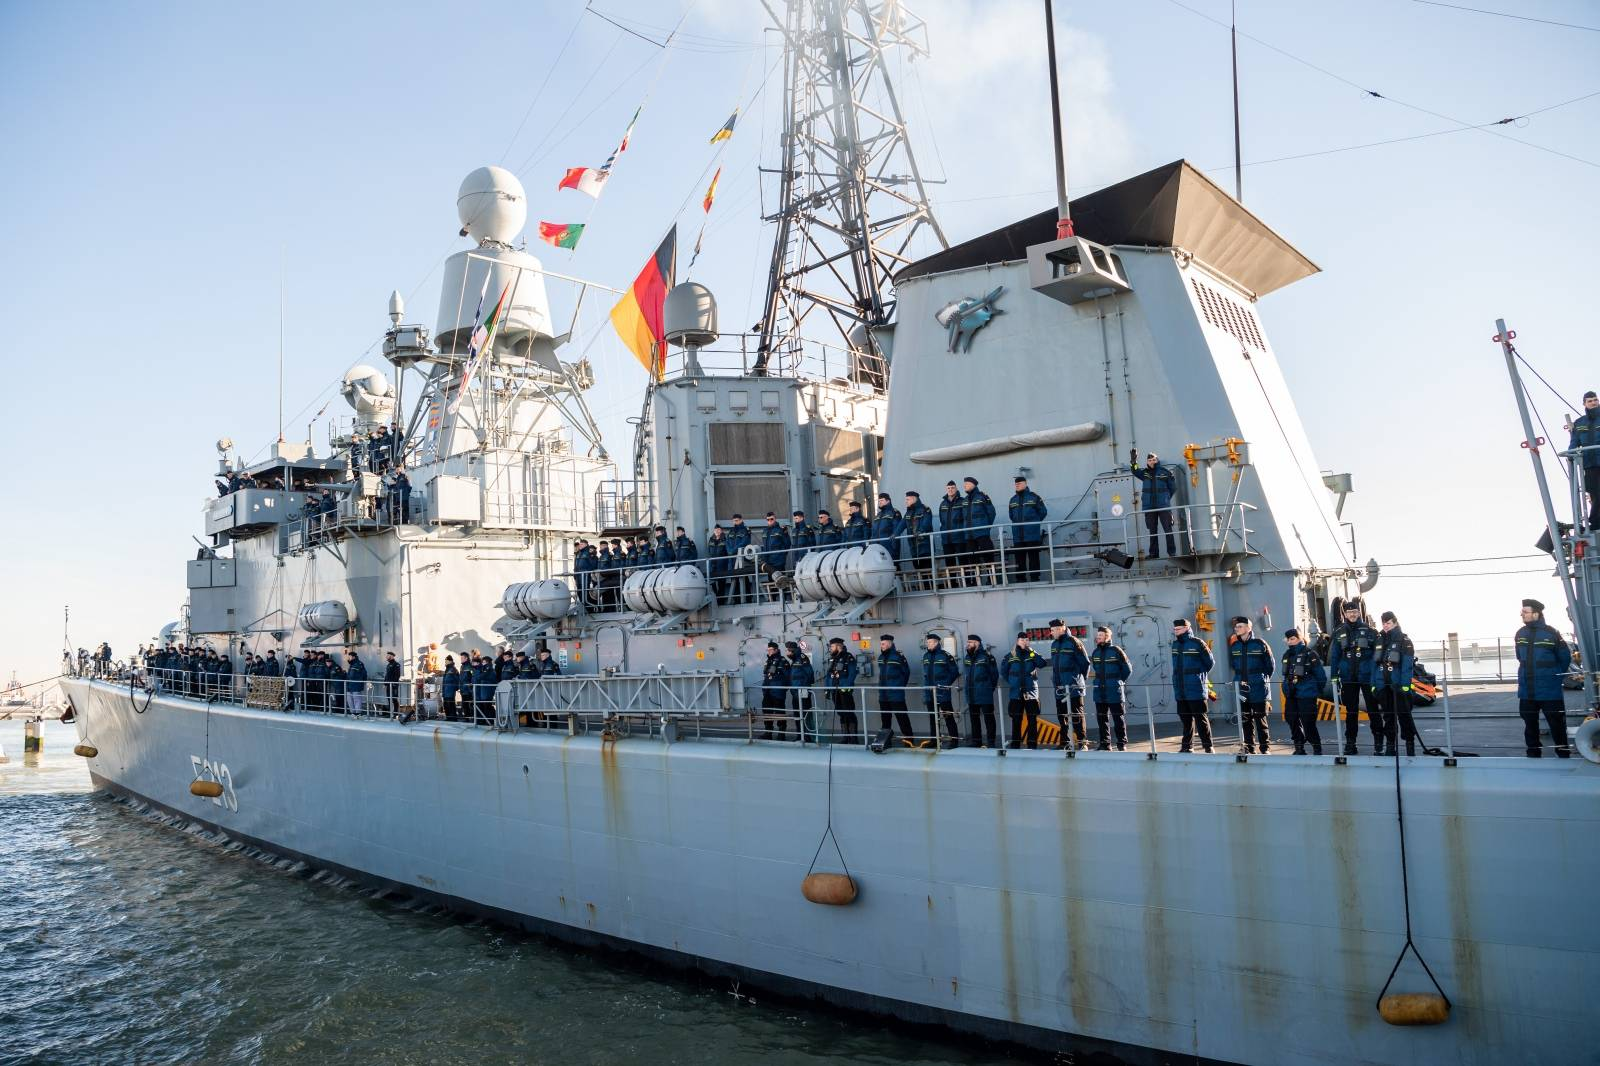 Return of the frigate Augsburg